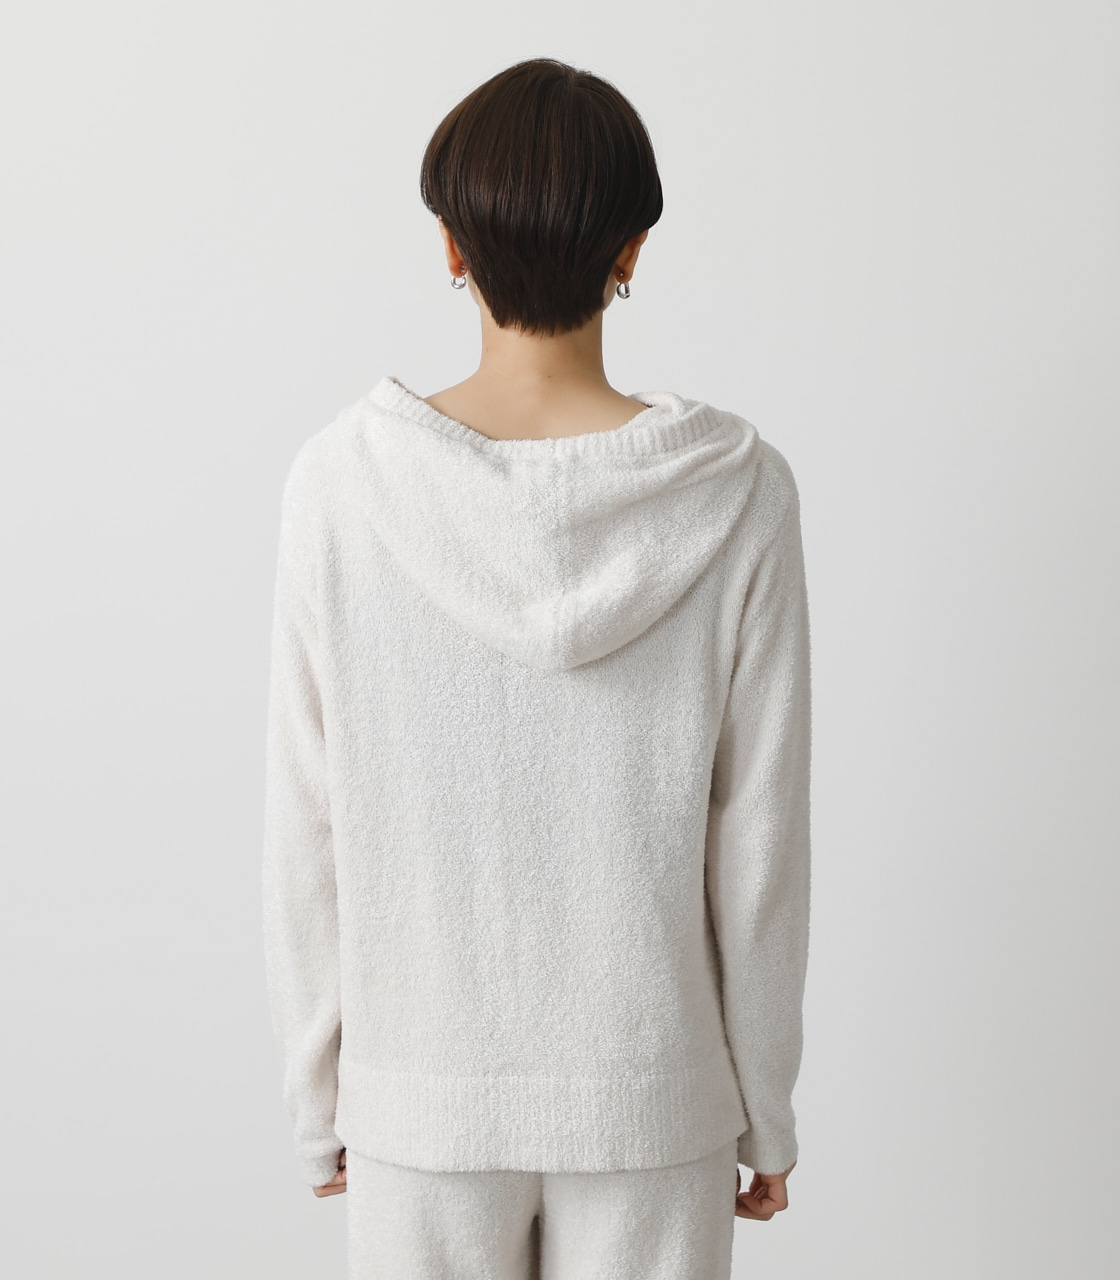 T/H FLUFFY HOODIE/T/Hフラッフィーフーディ 詳細画像 IVOY 7